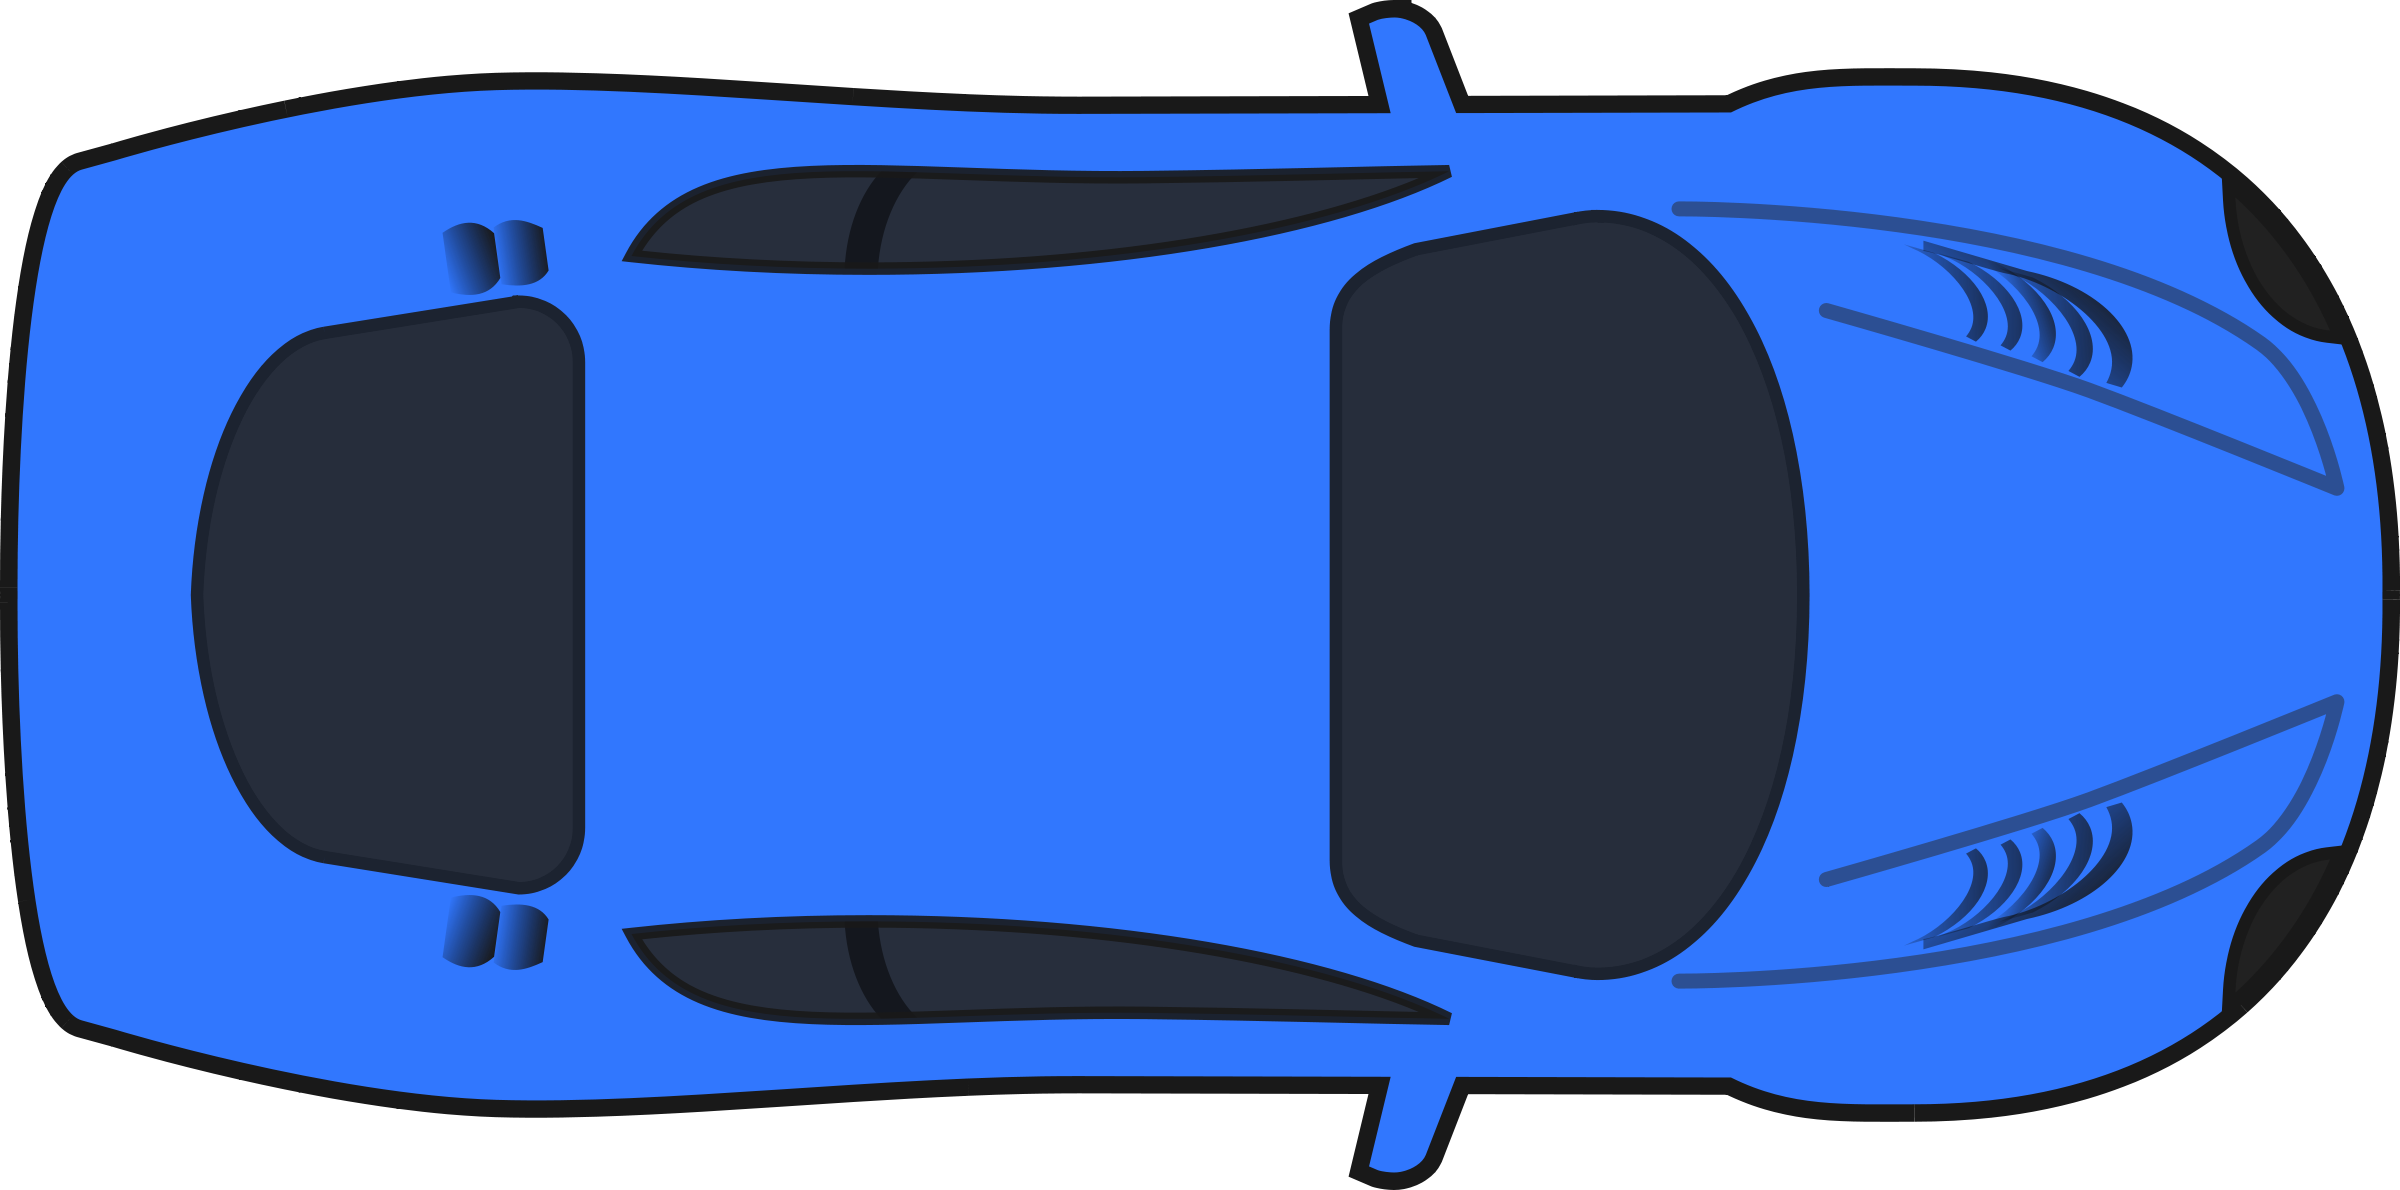 Race clipart family game. Dark blue racing car